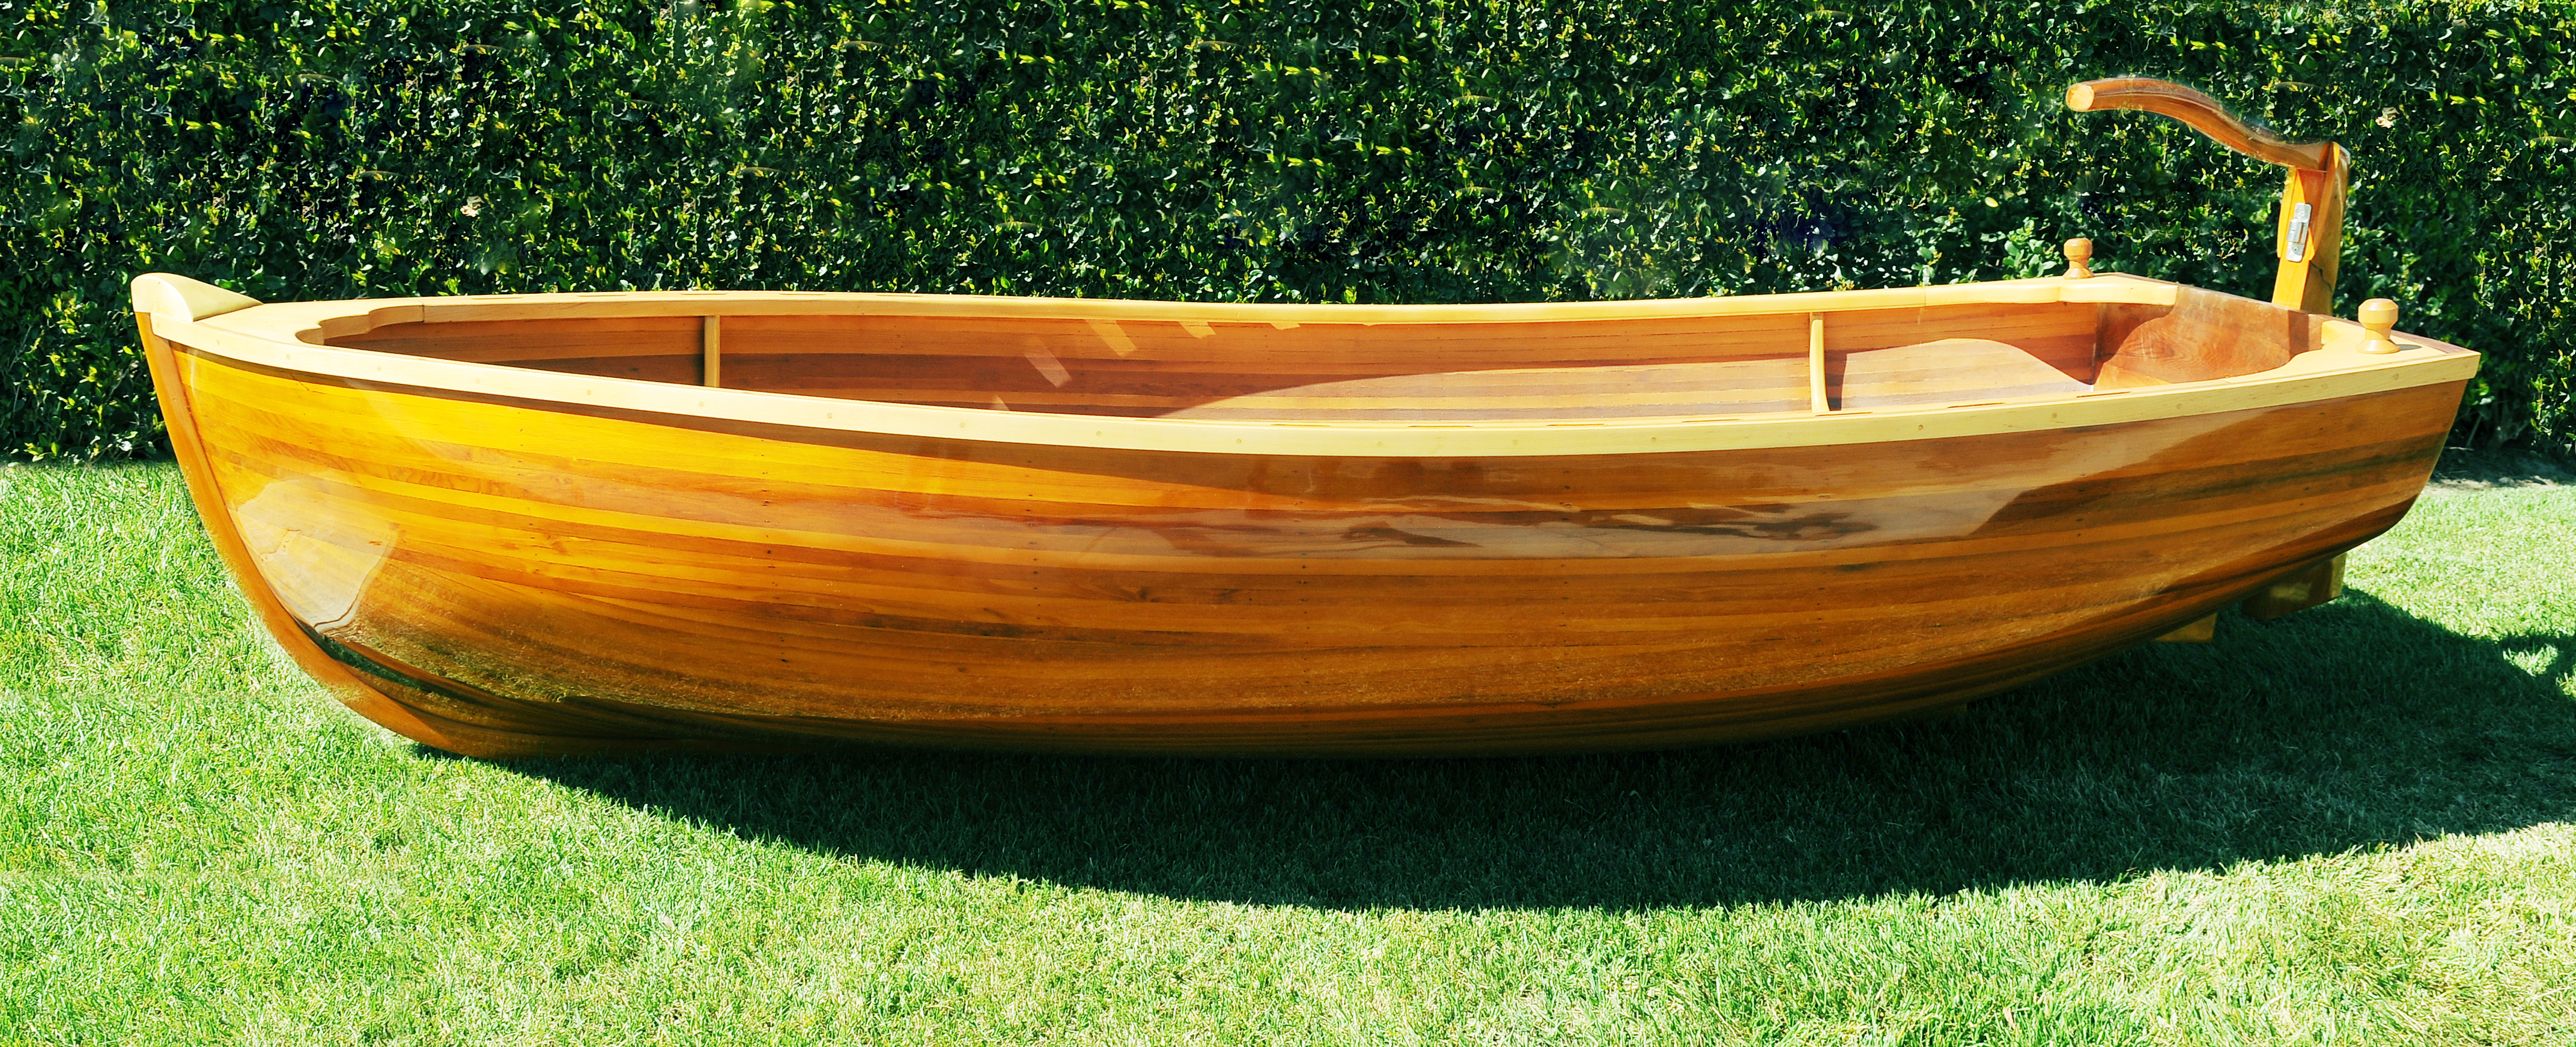 Little Bear Wooden Dinghy - Wooden Boat USA